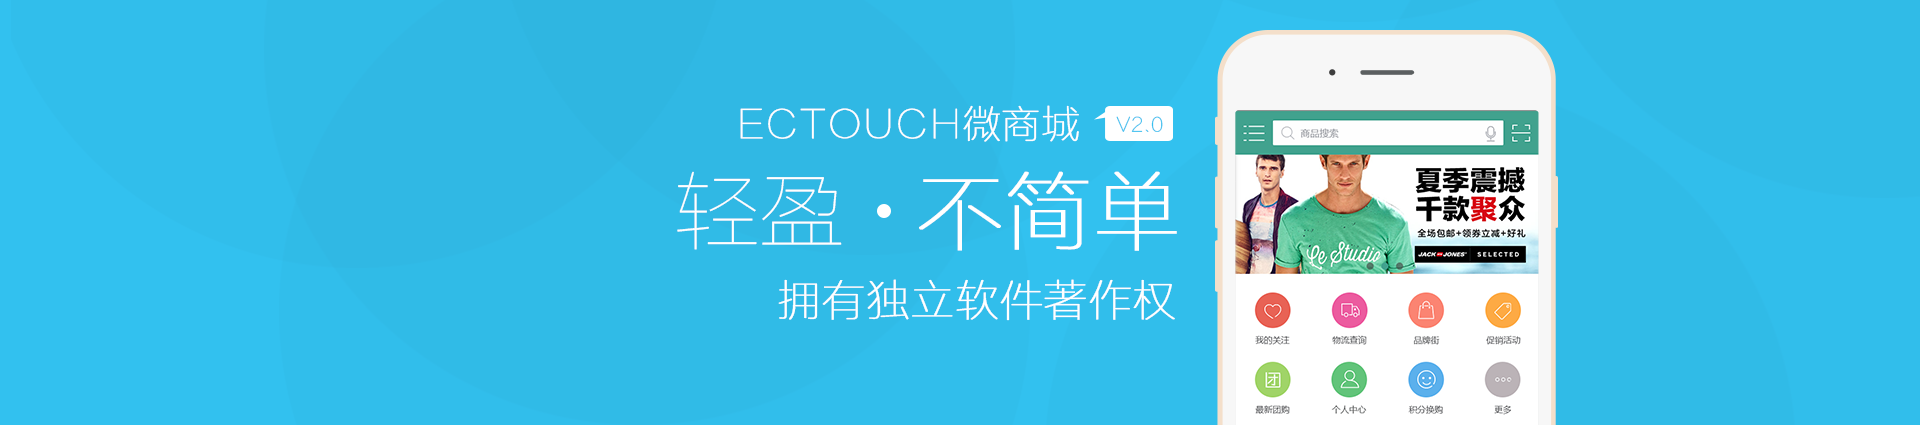 ectouch2.0